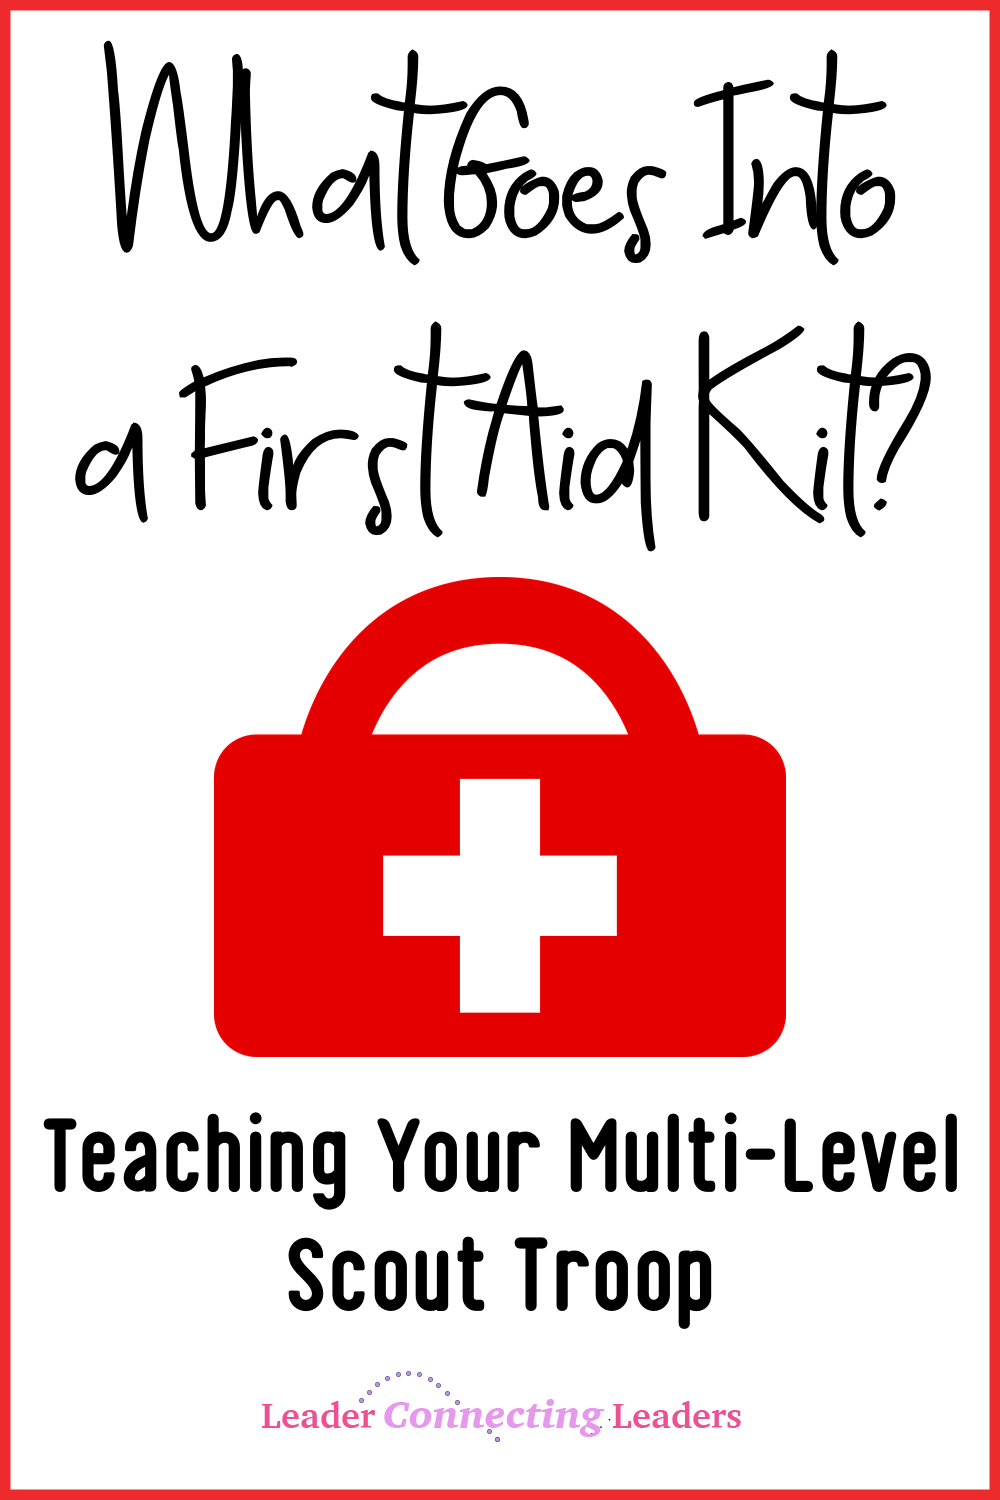 5 Fun Activities To Earn The Junior First Aid Badge | Leader Connecting Leaders